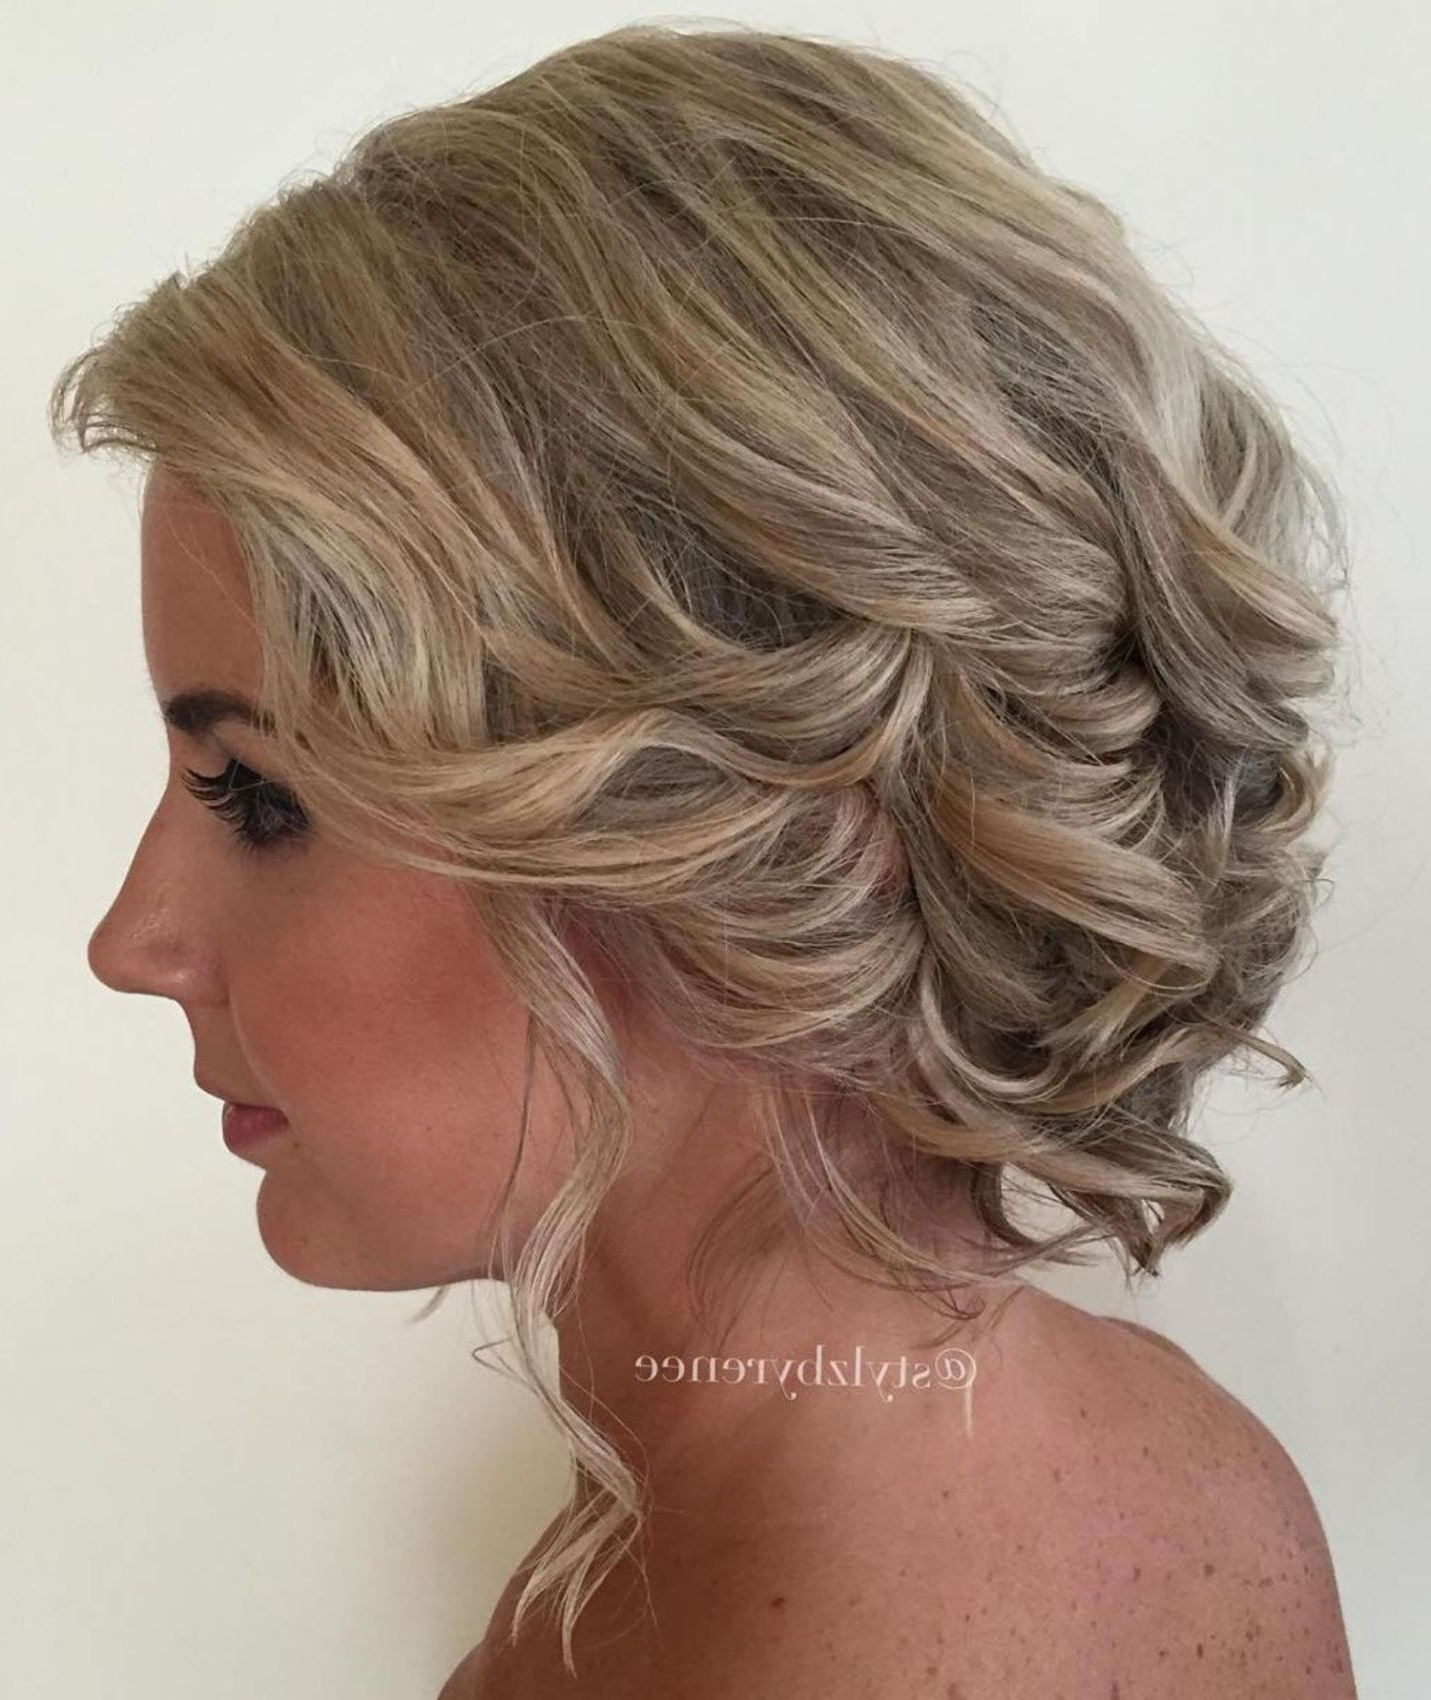 Most Recently Released Short Wedding Hairstyles With A Swanky Headband With Regard To 60 Updos For Short Hair – Your Creative Short Hair Inspiration (View 12 of 20)